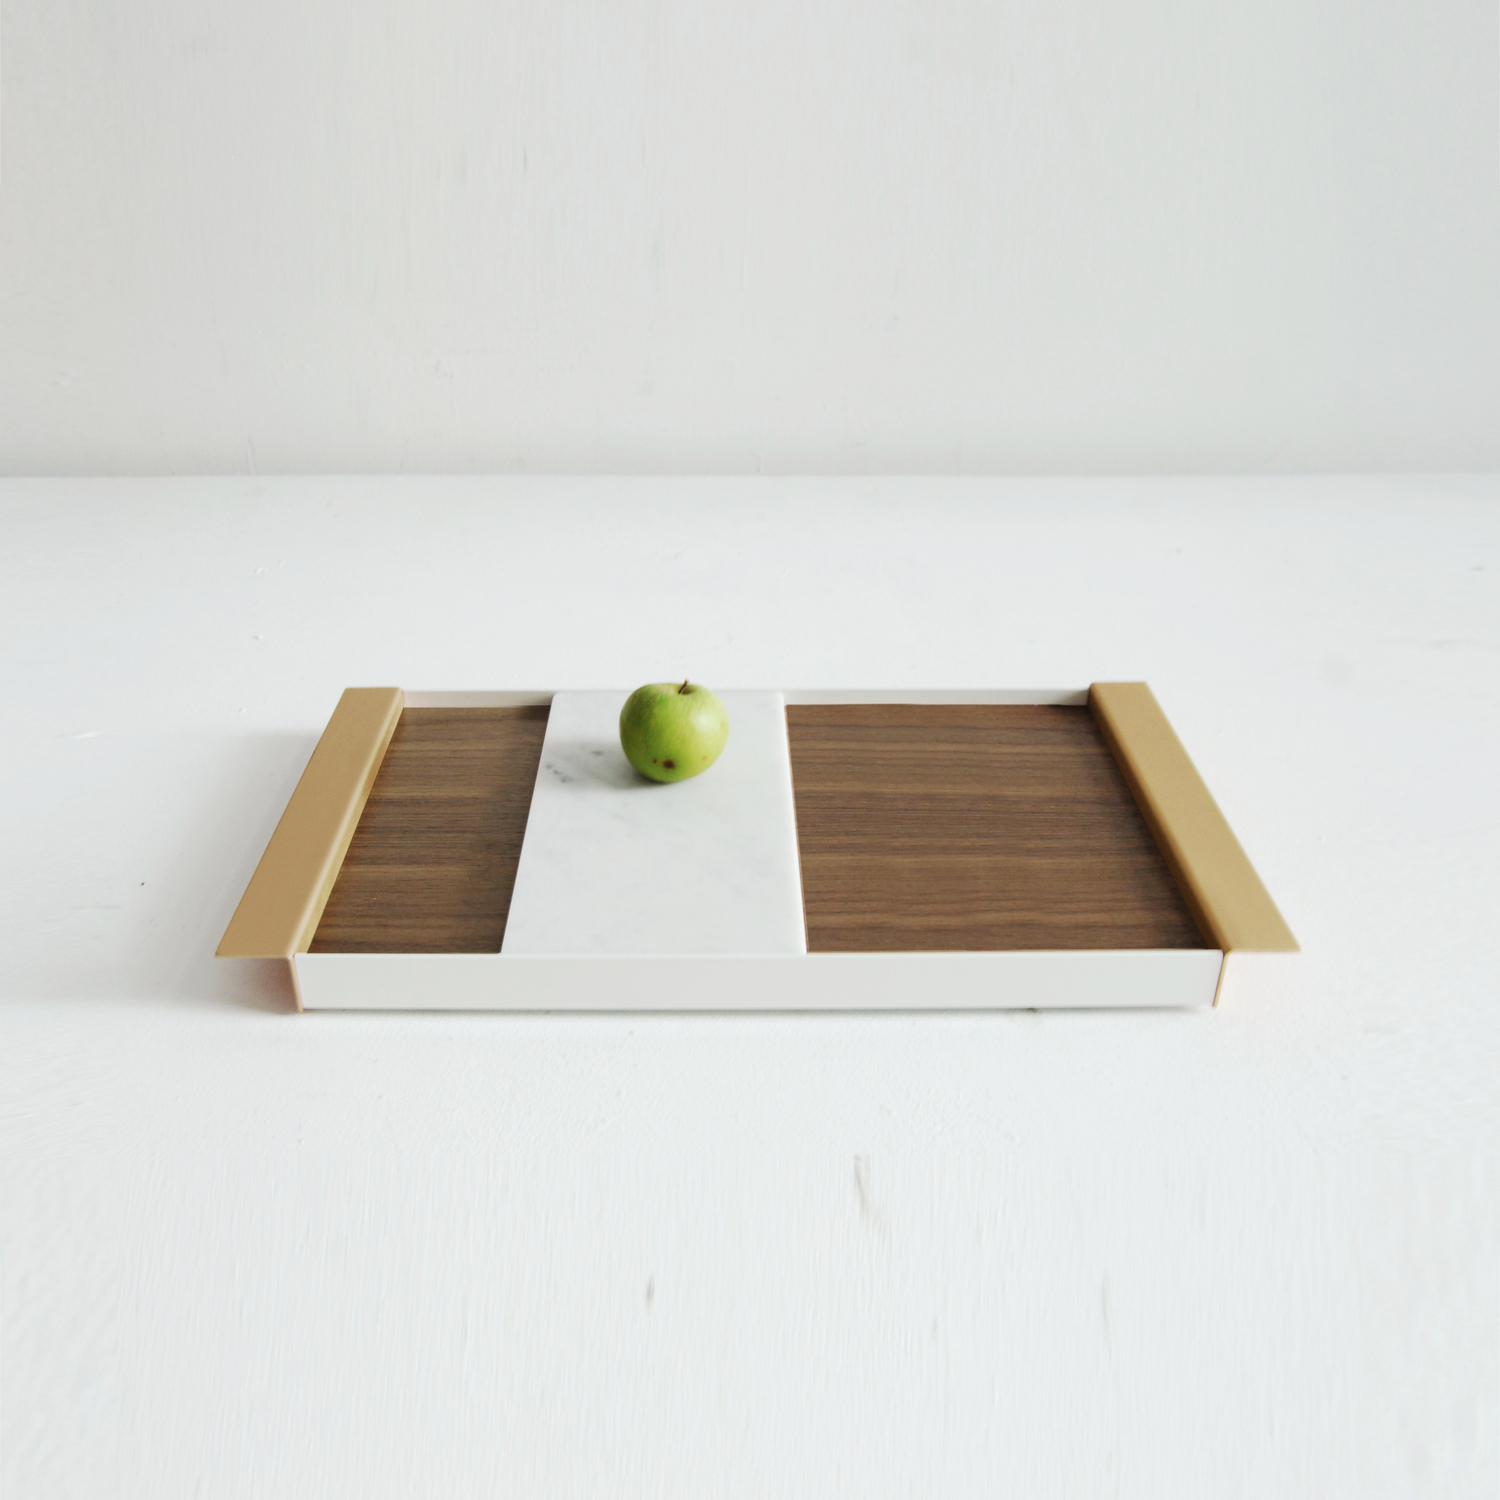 Wood, aluminum and marble tray from Ladies & Gentlemen Studio